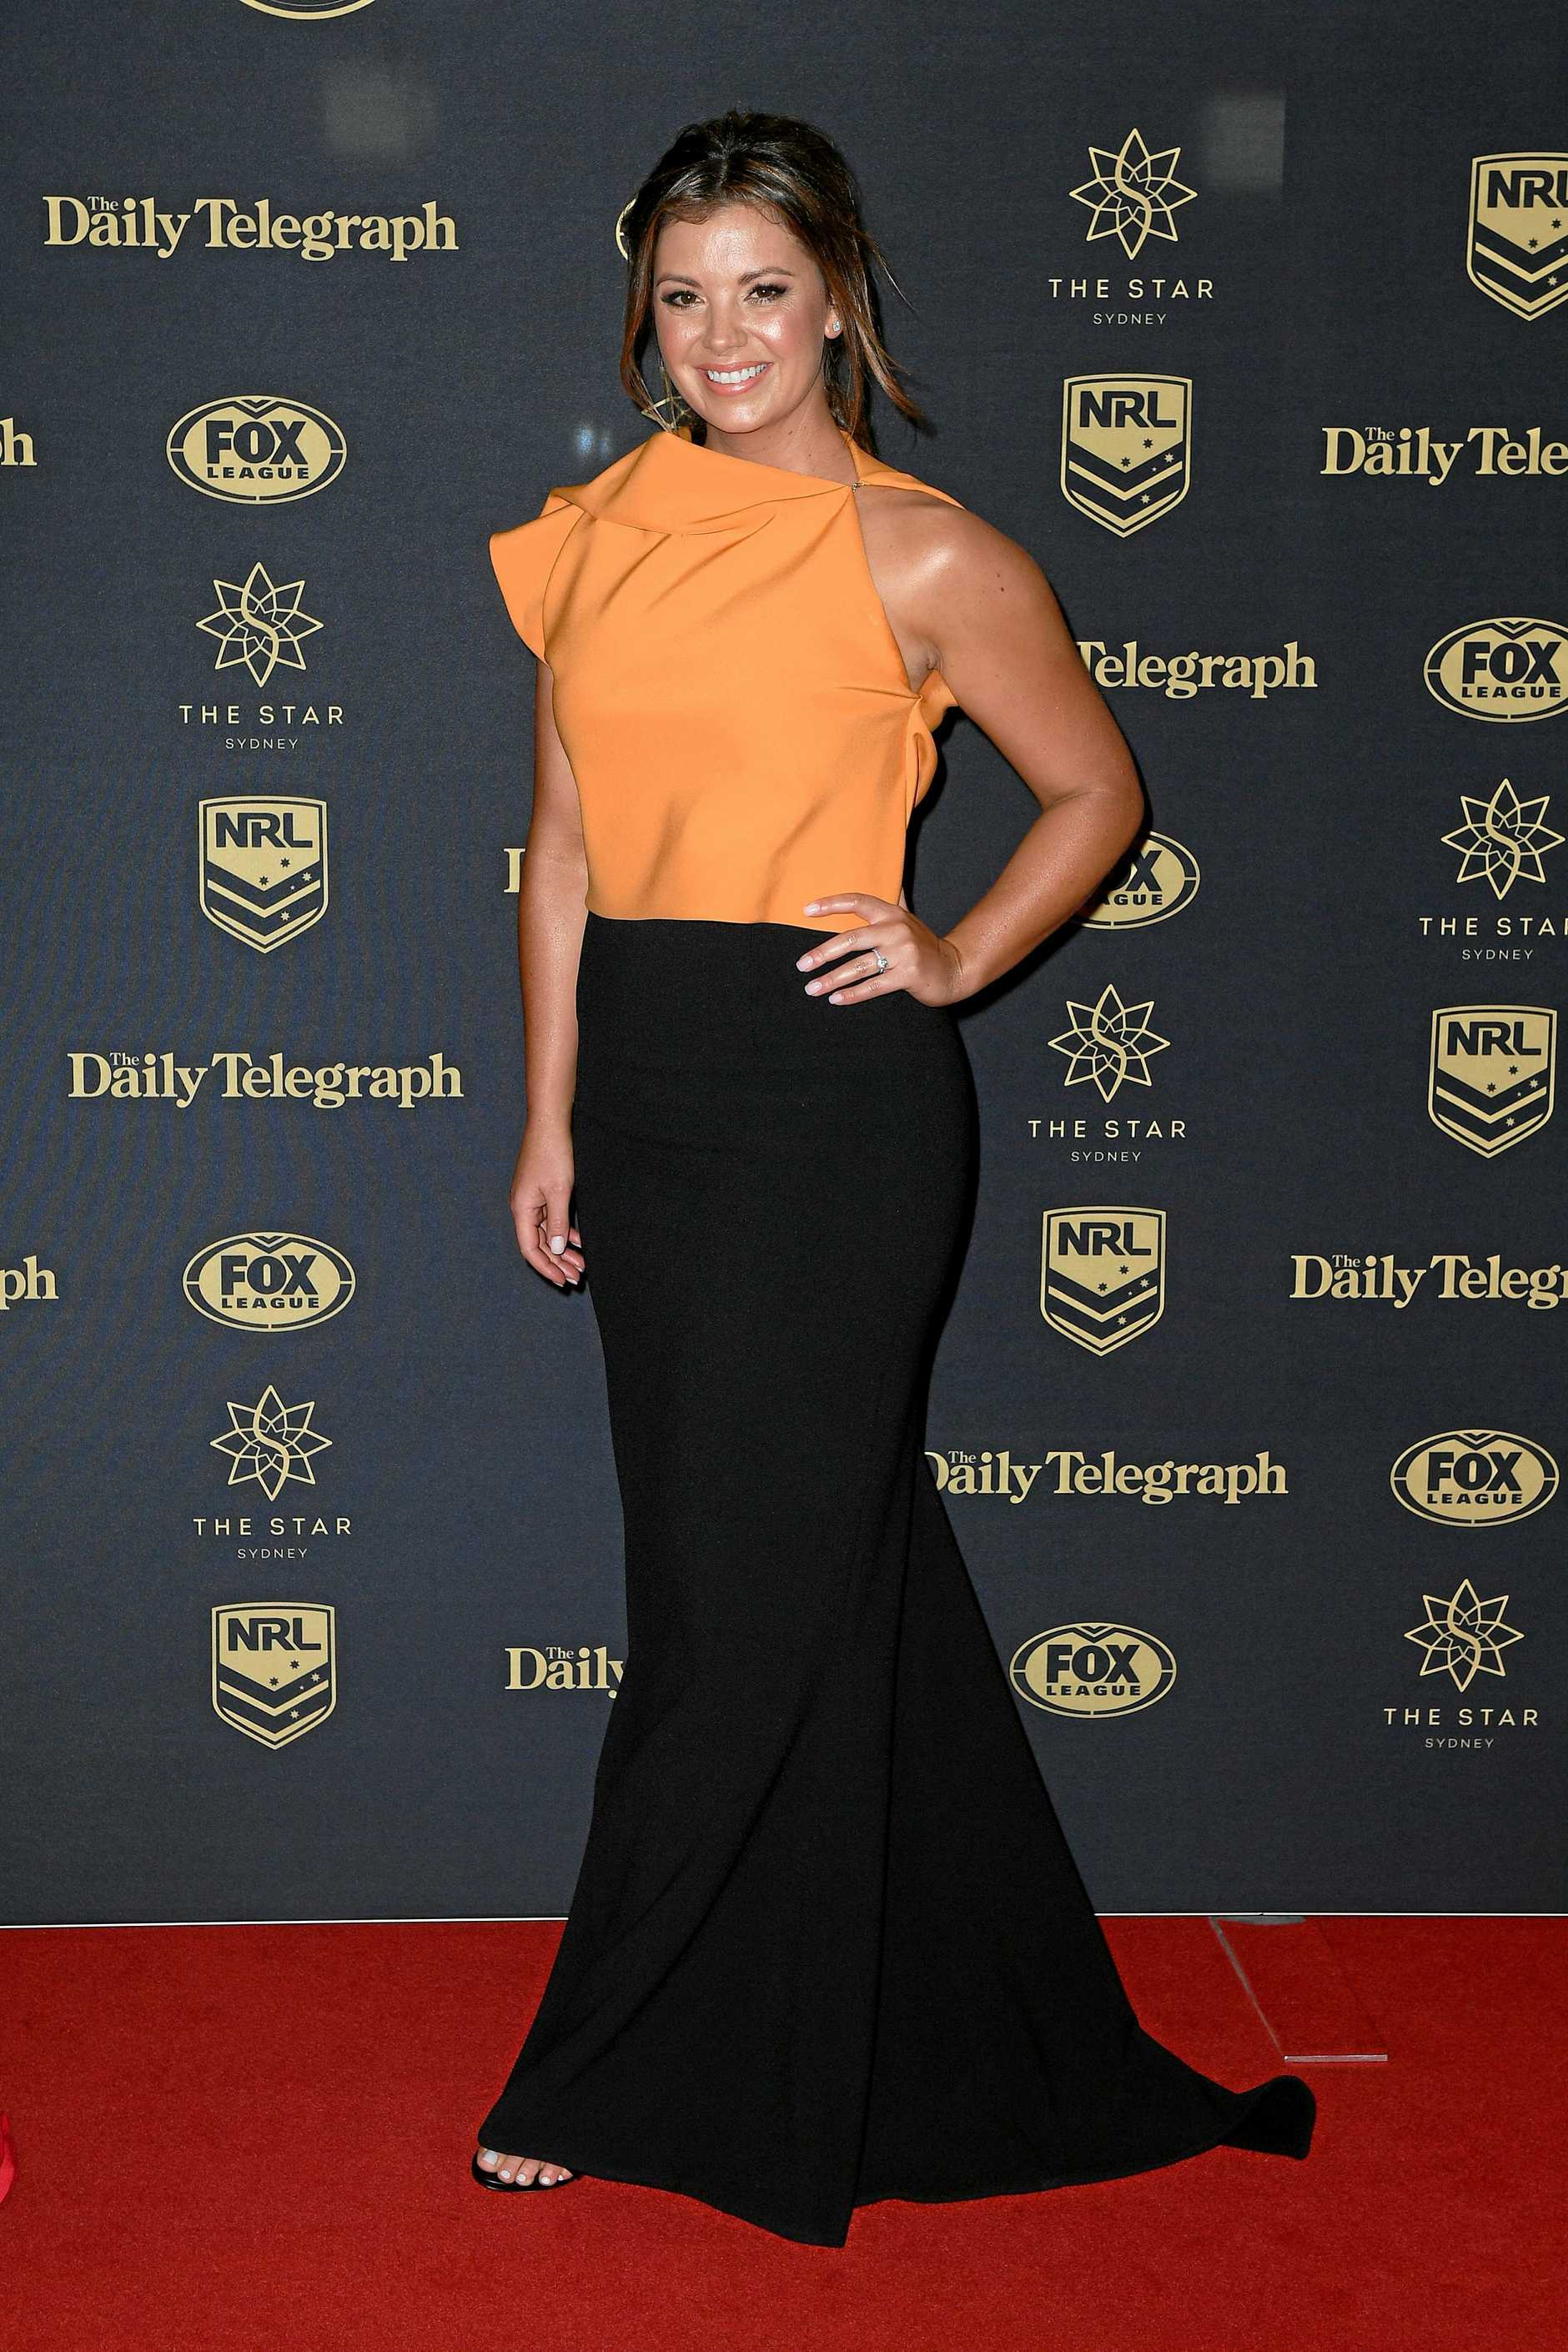 Television presenter Yvonne Sampson arrives at the Dally M Awards in Sydney, Wednesday, September 27, 2017. The awards are named in honour of former Australian Rugby League great Herbert Henry 'Dally' Messenger, and were introduced in 1980. (AAP Image/Dan Himbrechts) NO ARCHIVING